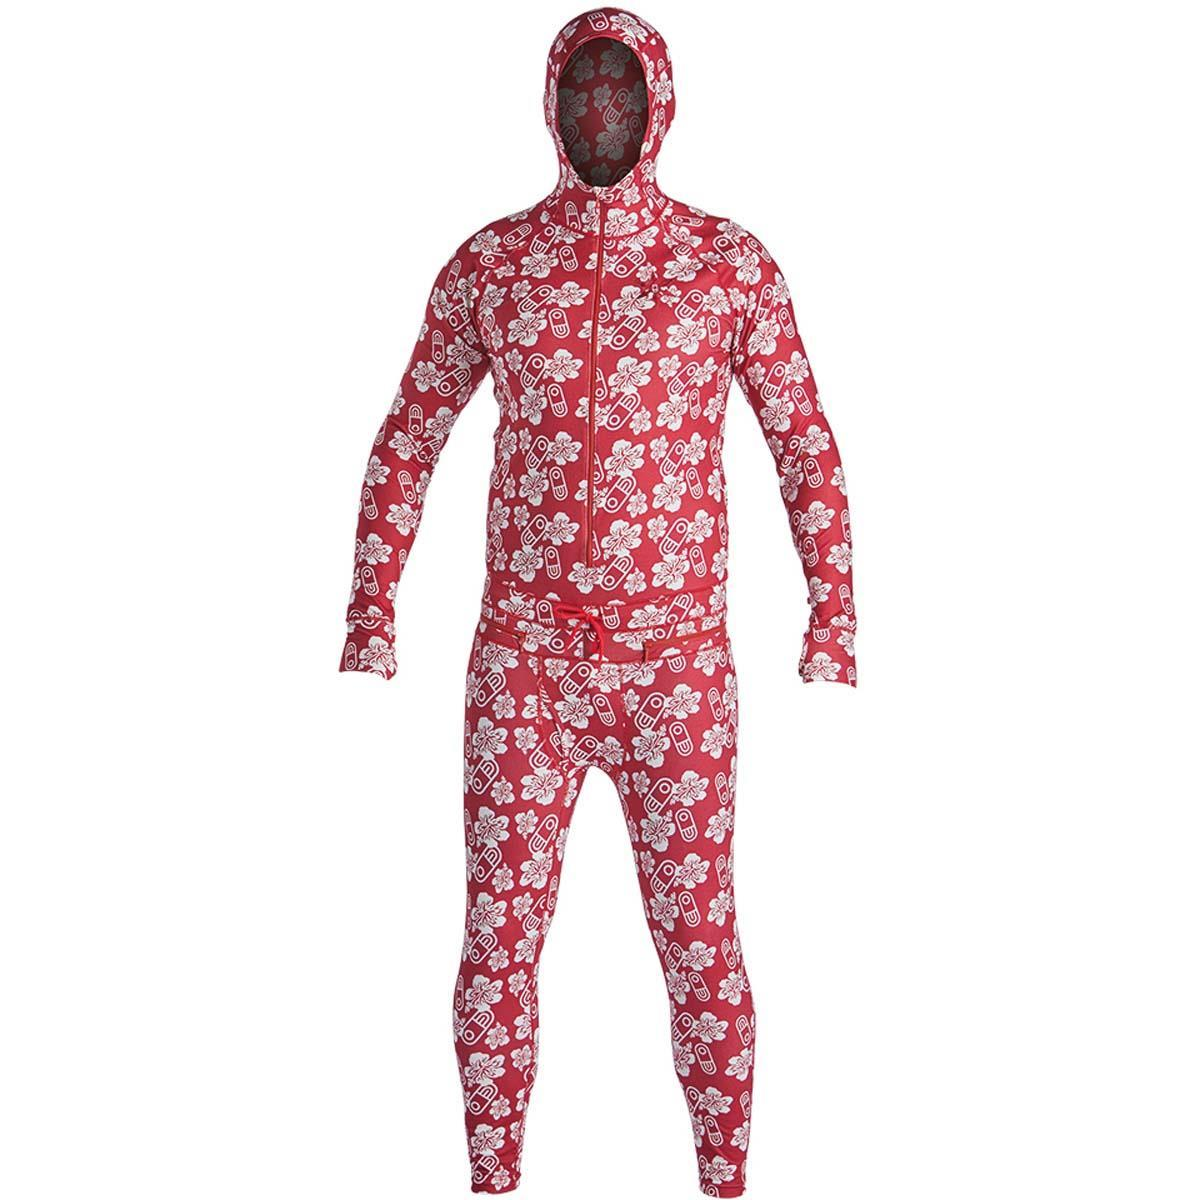 abmnj1-trybhm Airblaster Classic Ninja Suit terry bahama front